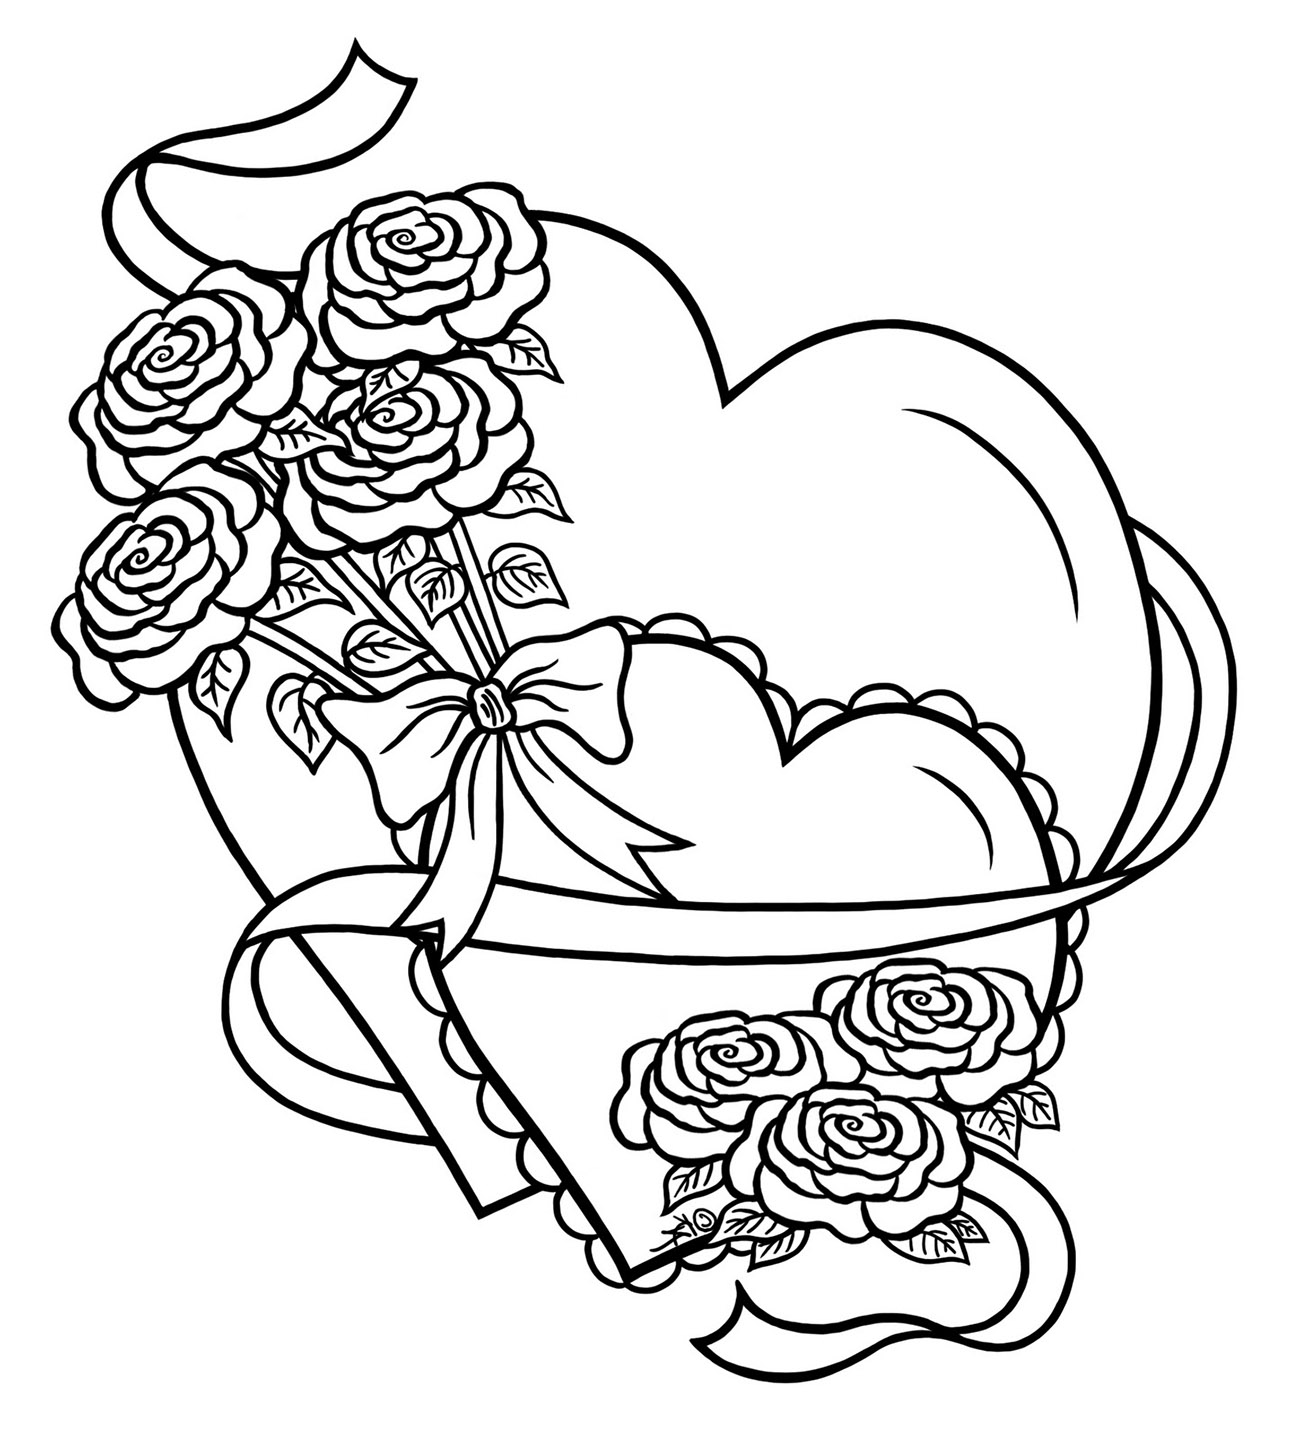 beautiful flower heart coloring pages flowery heart coloring coloring page print color fun beautiful flower coloring pages heart